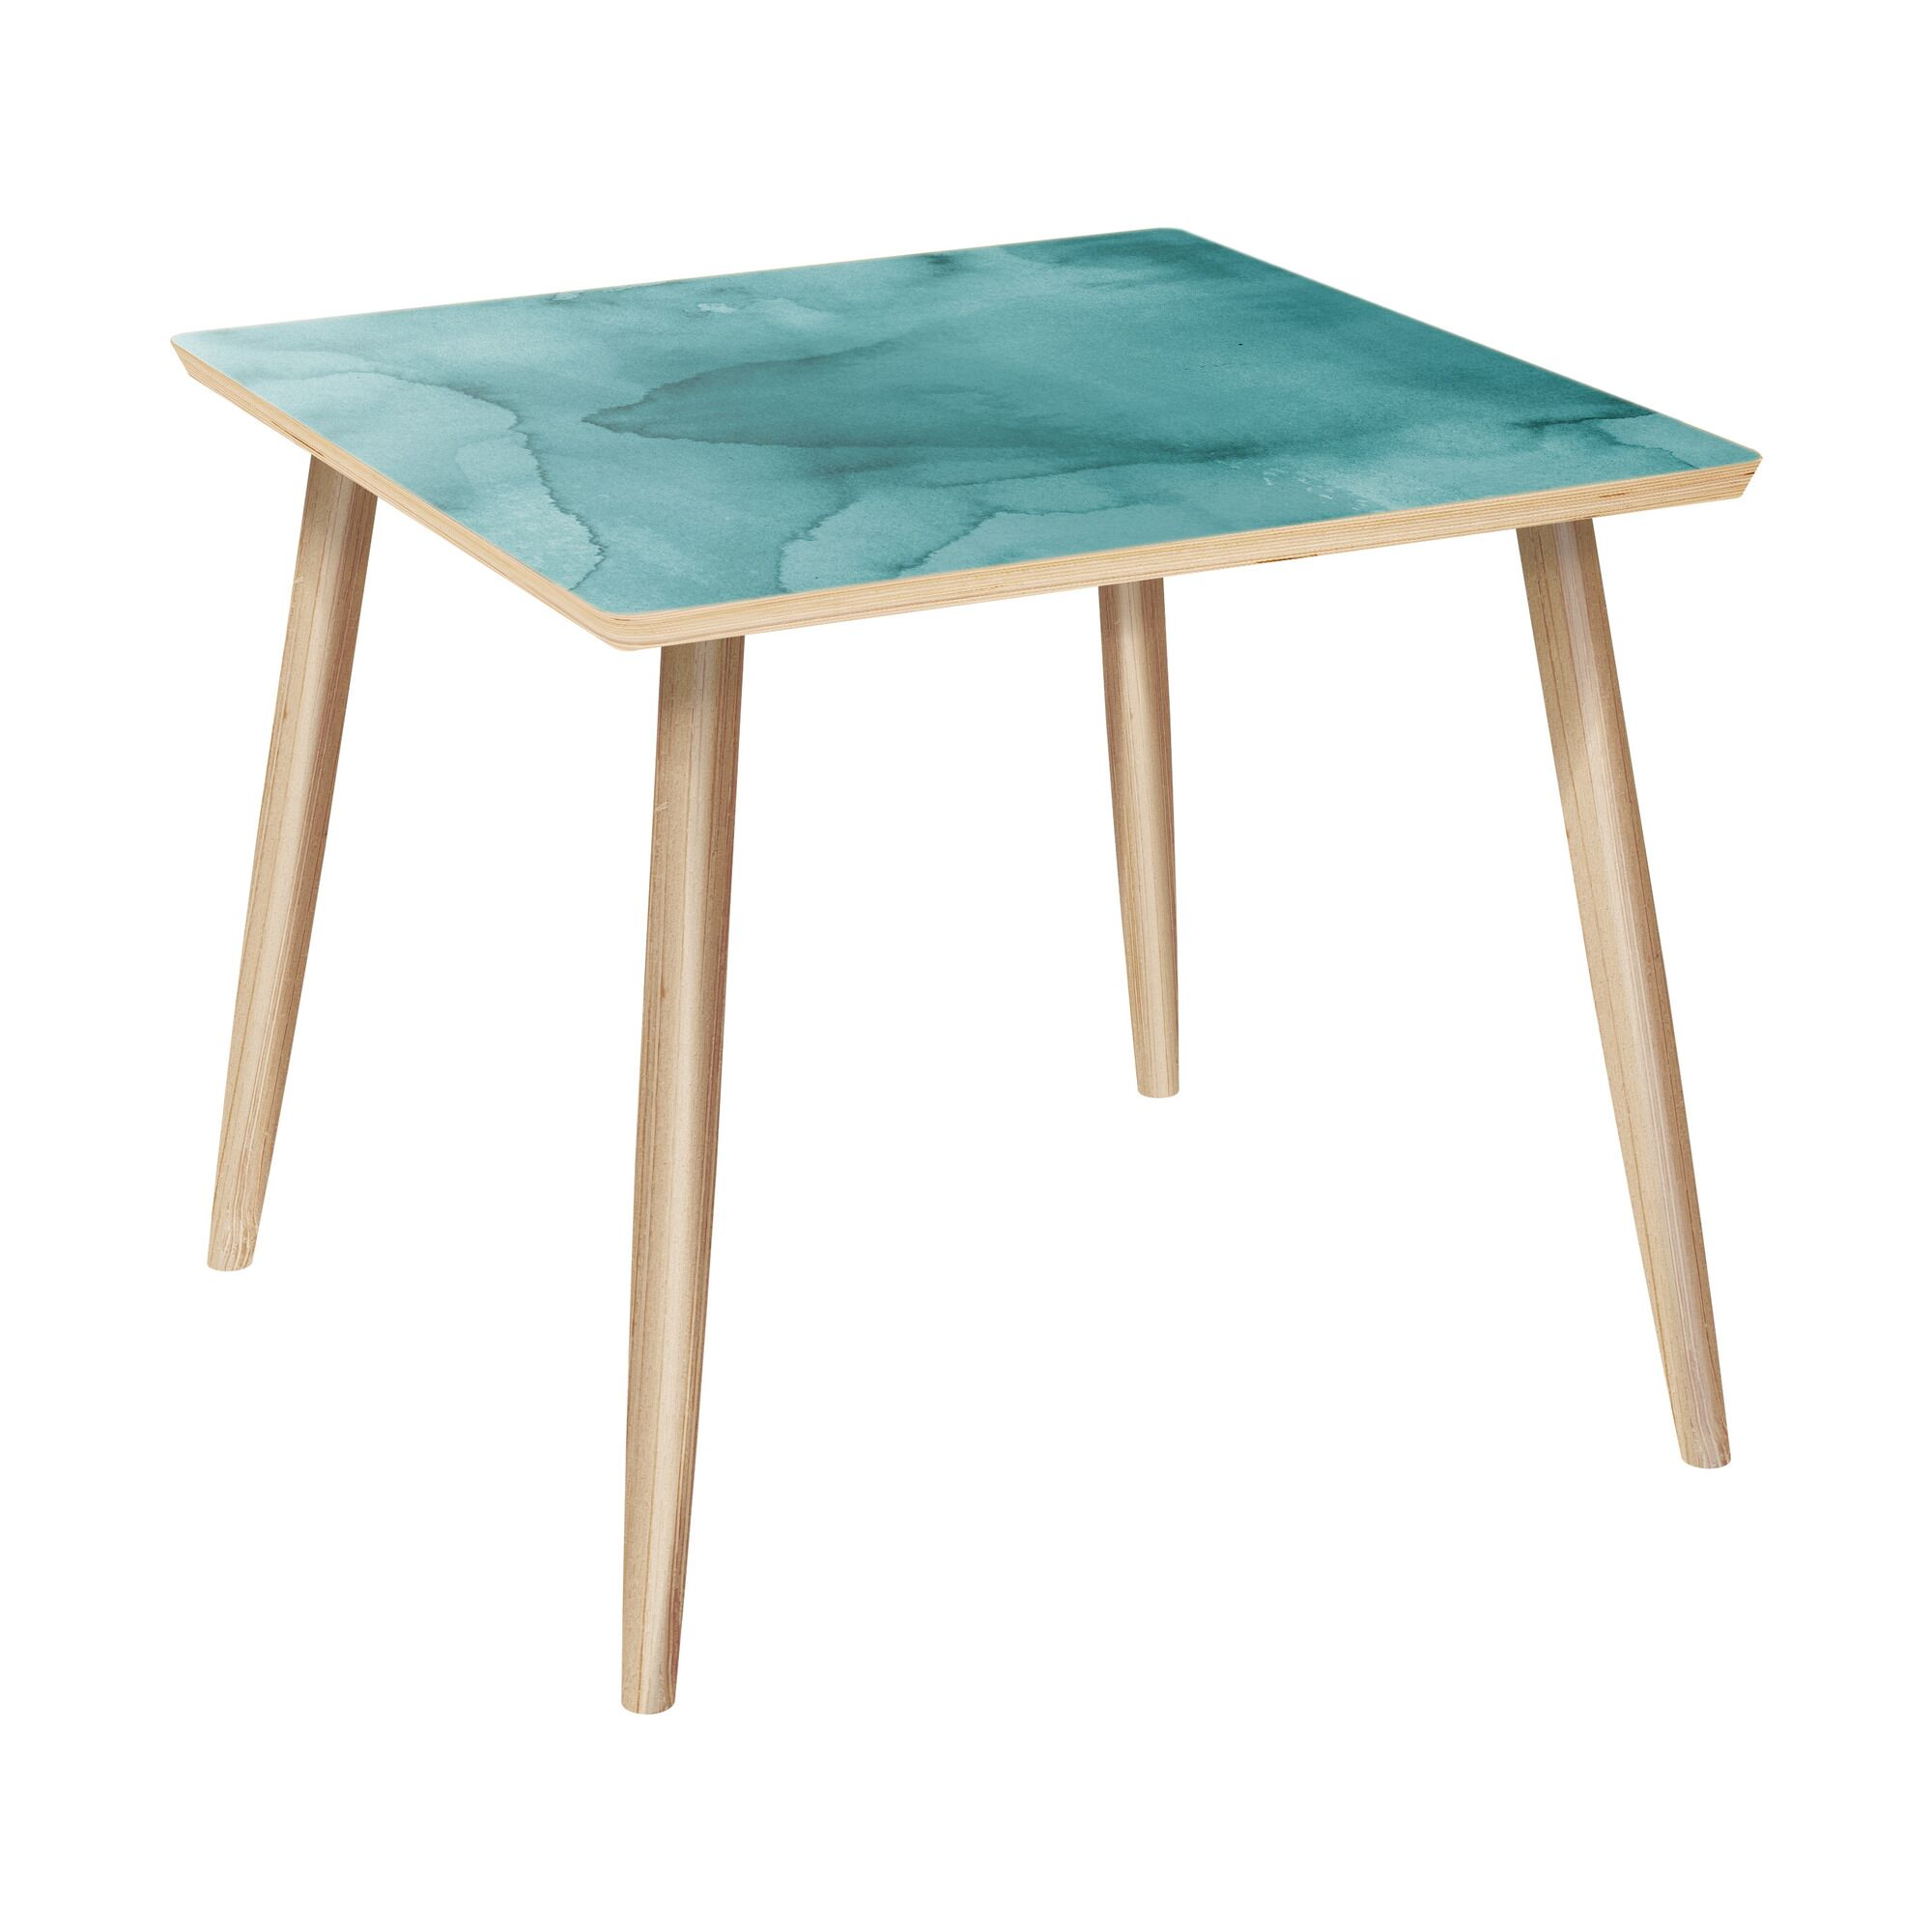 Lasker End Table Table Base Color: Natural, Table Top Color: Turquoise